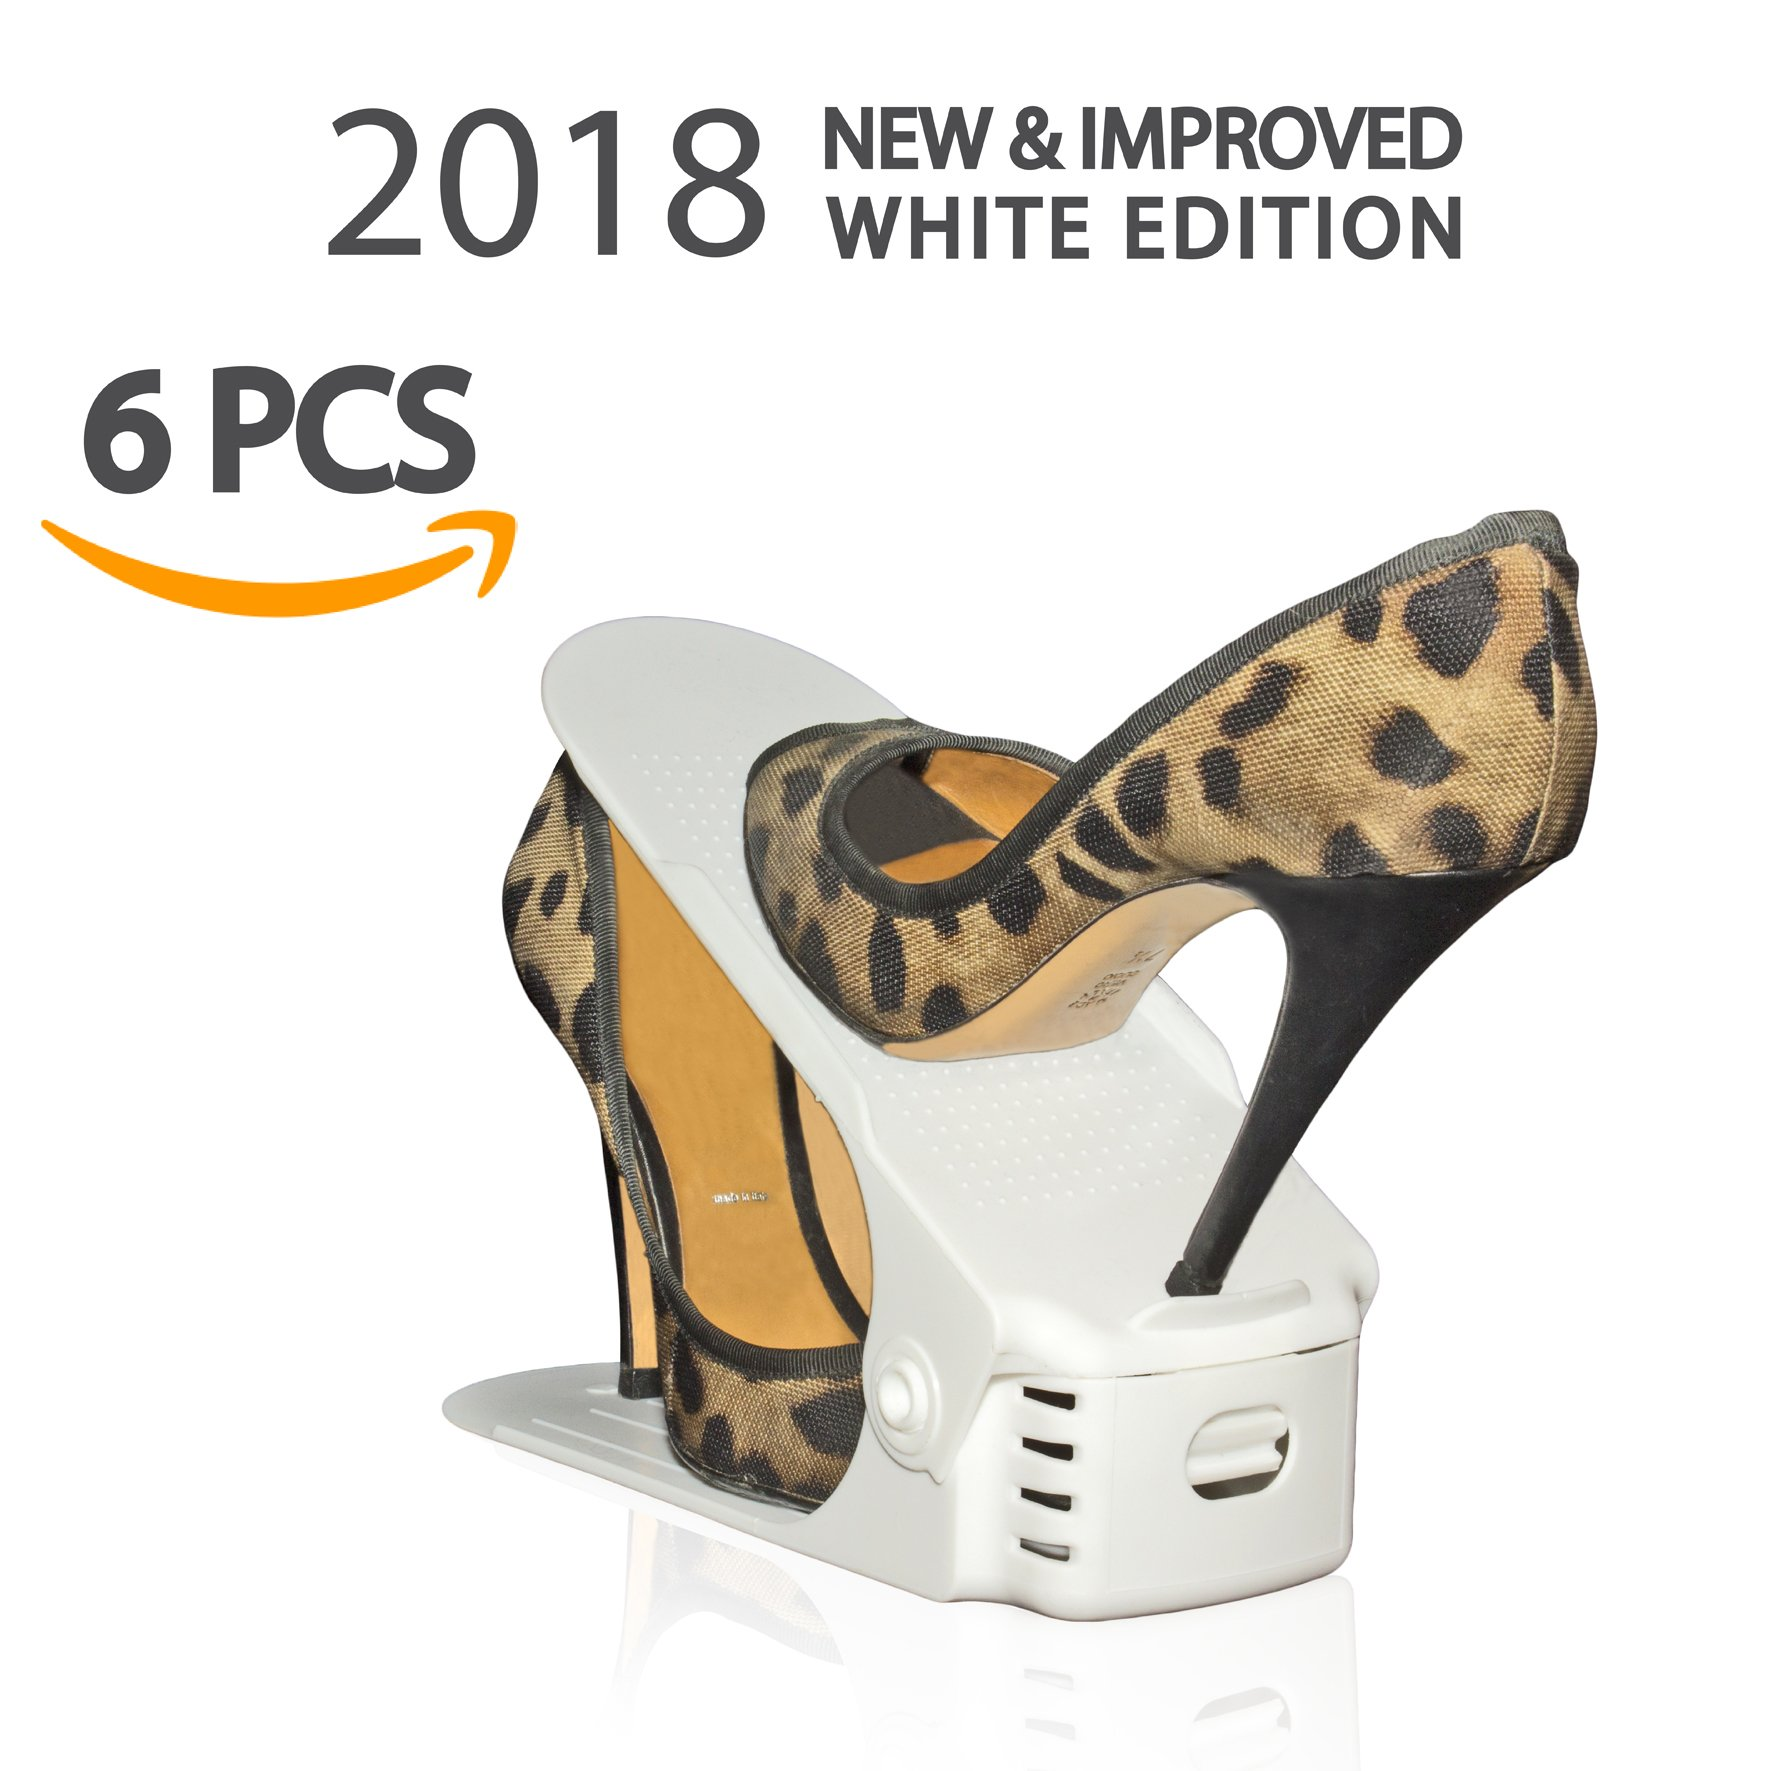 2018 White Edition Shoe Slots (6 Pack) - Adjustable Shoe Organizer Space Saver